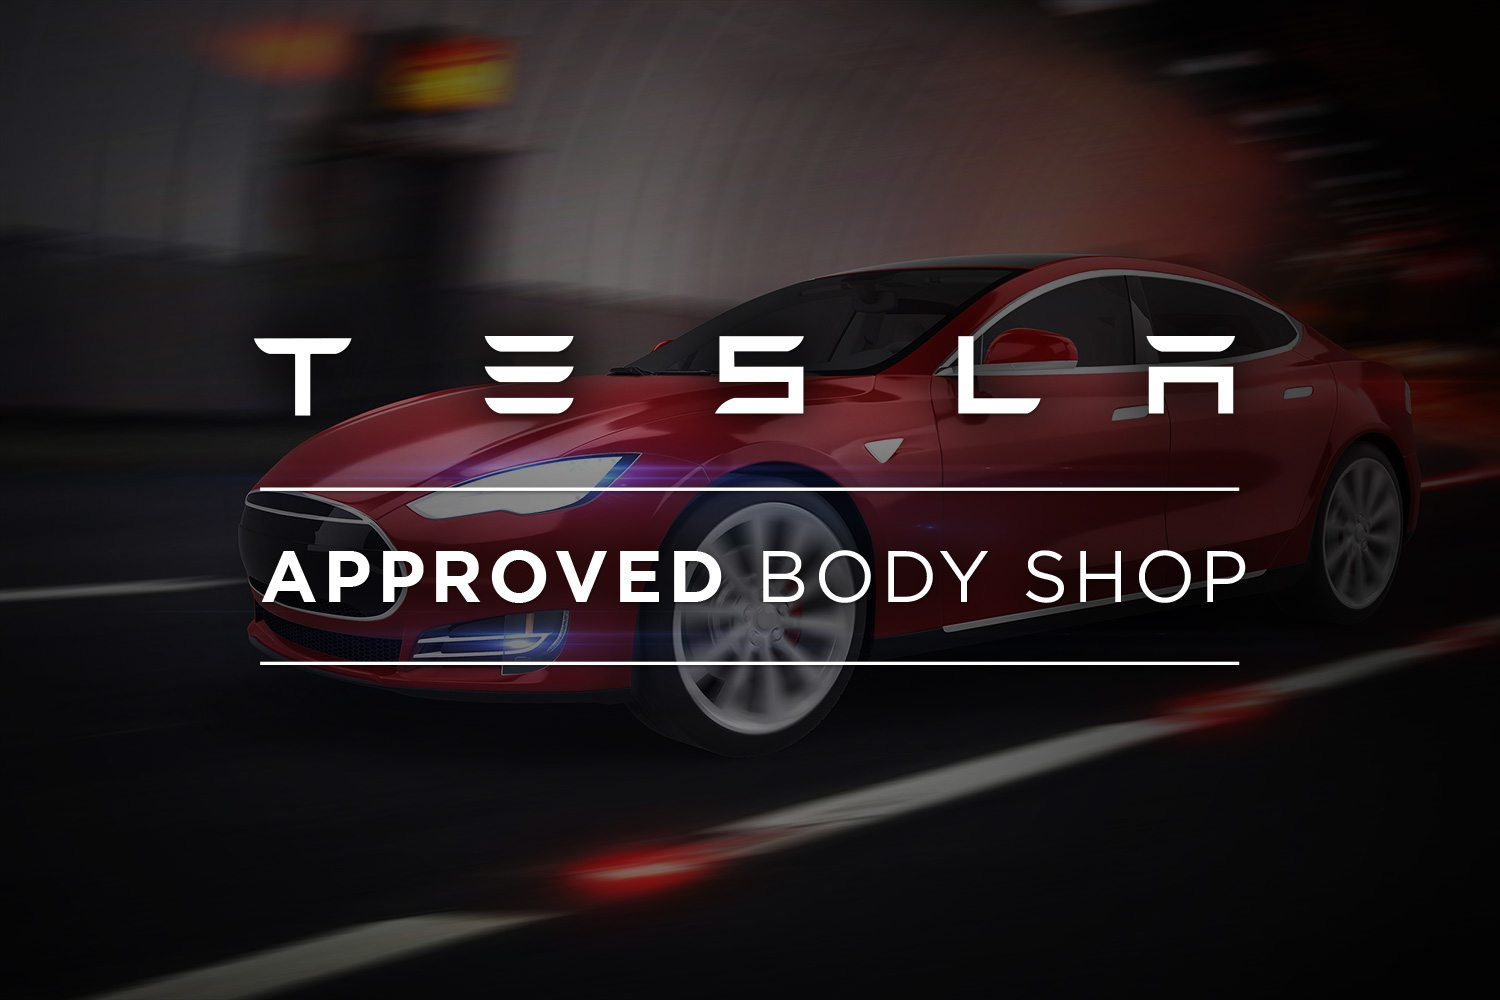 Tesla certified auto body repair toronto gta leon s for The motors approved by the motors